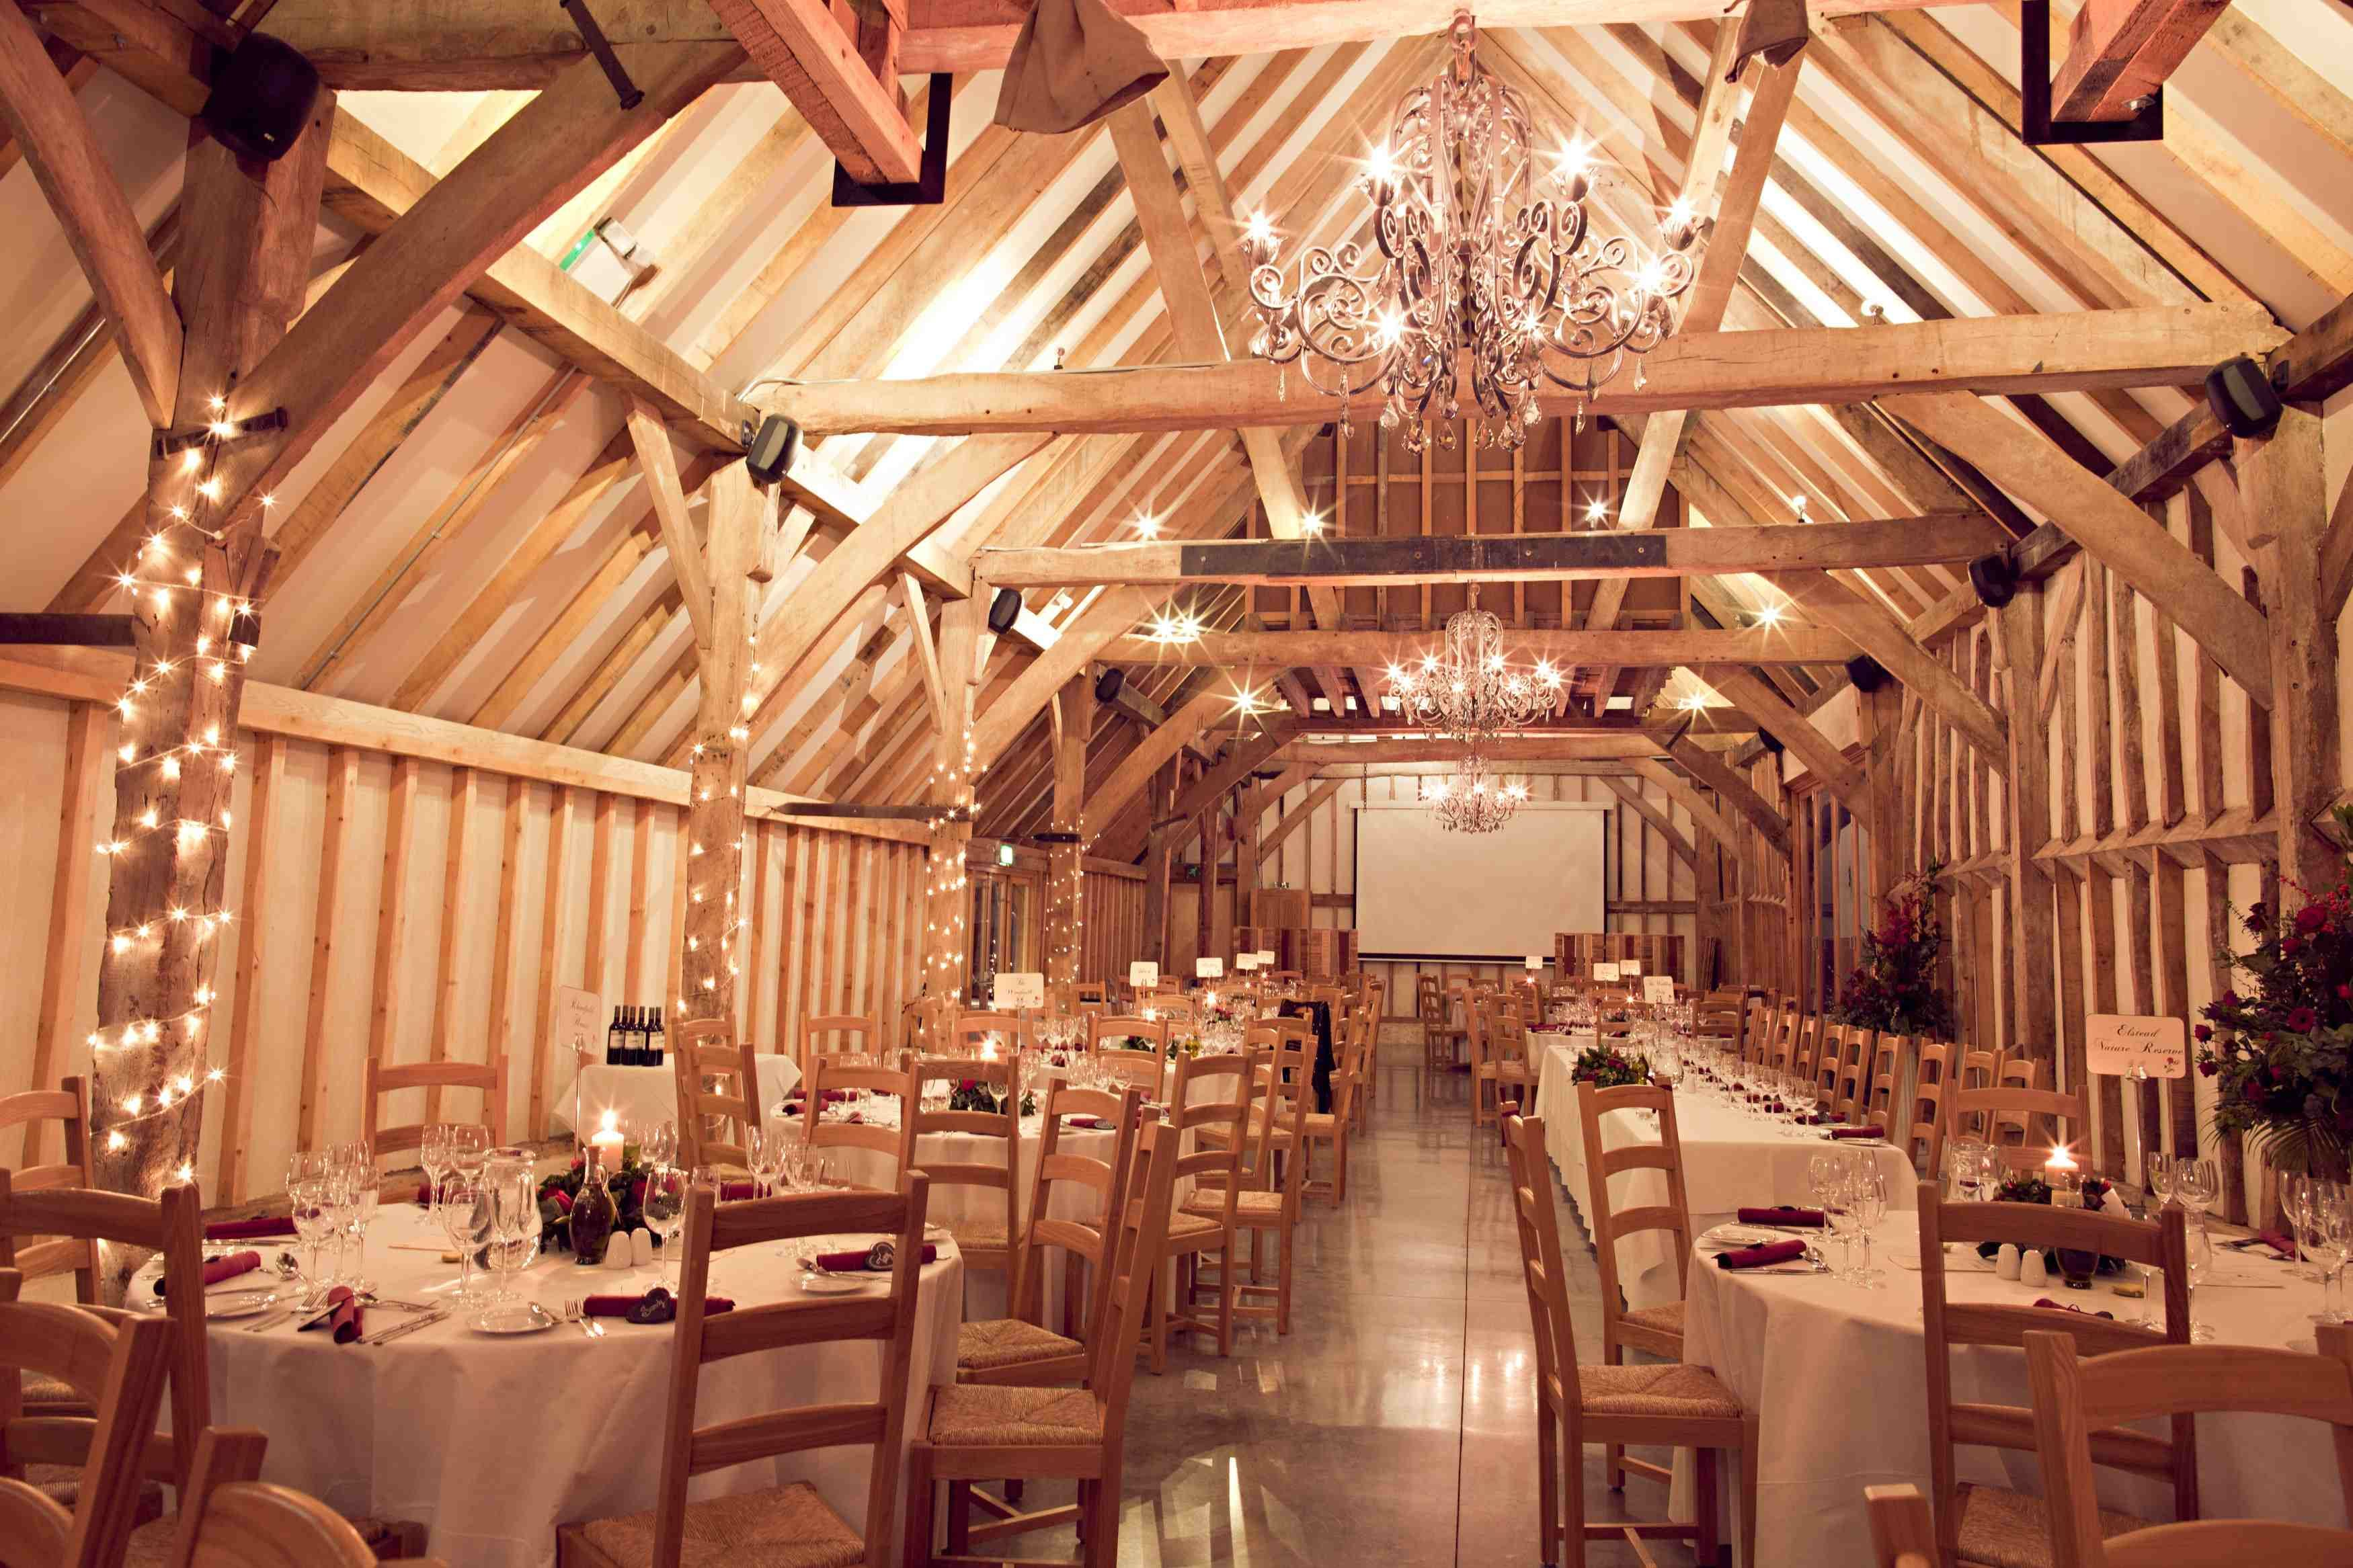 Fairy lights wrapped around the barn beams create a ...